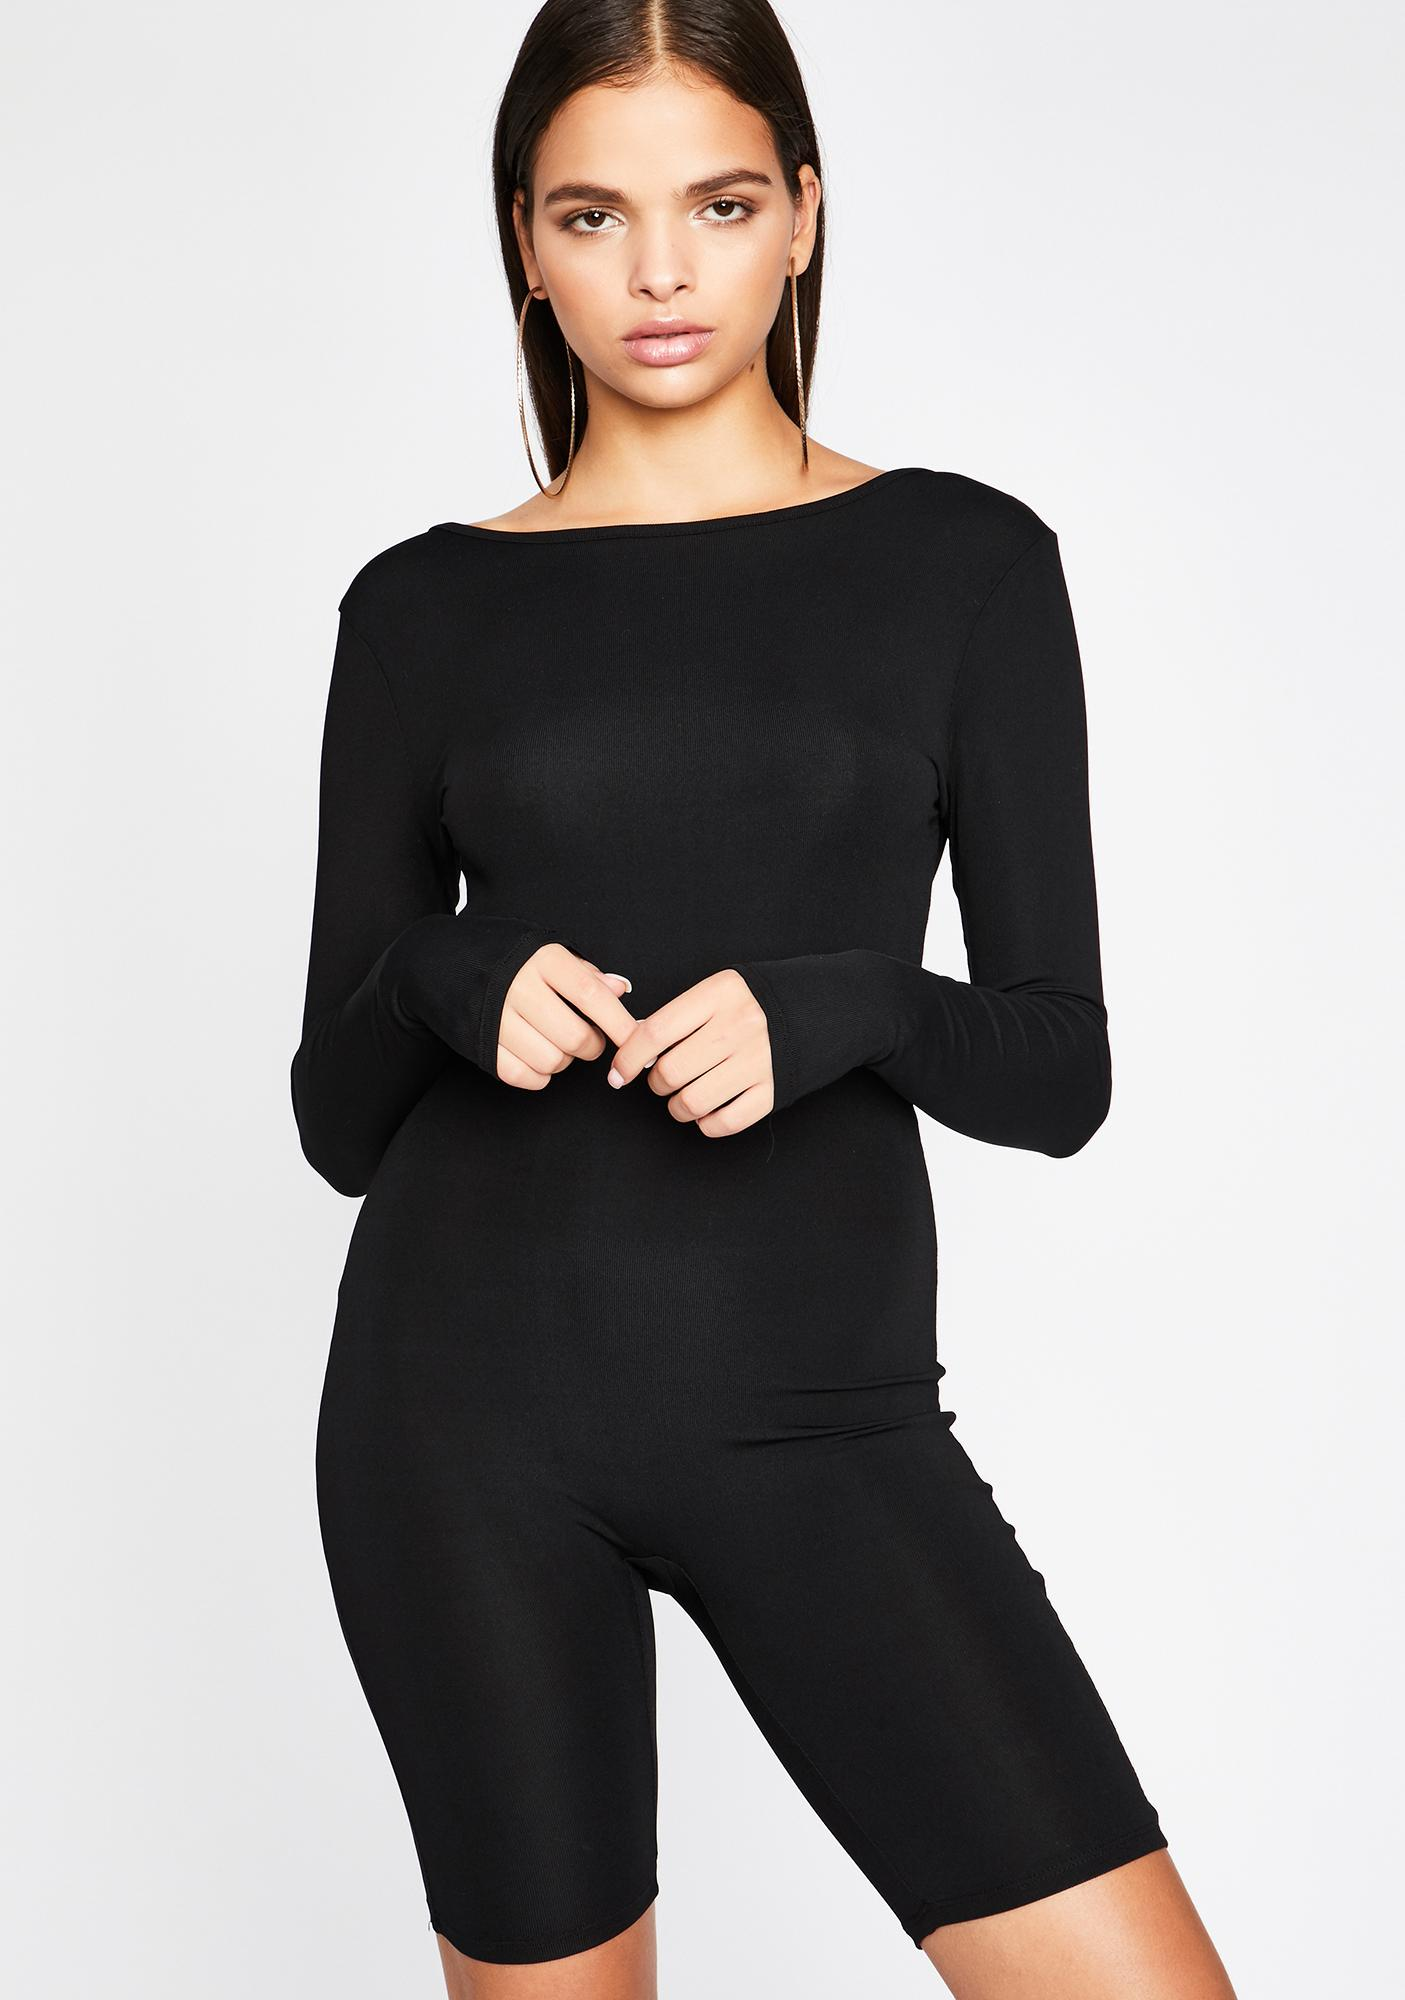 Fit For The Job Long Sleeve Romper